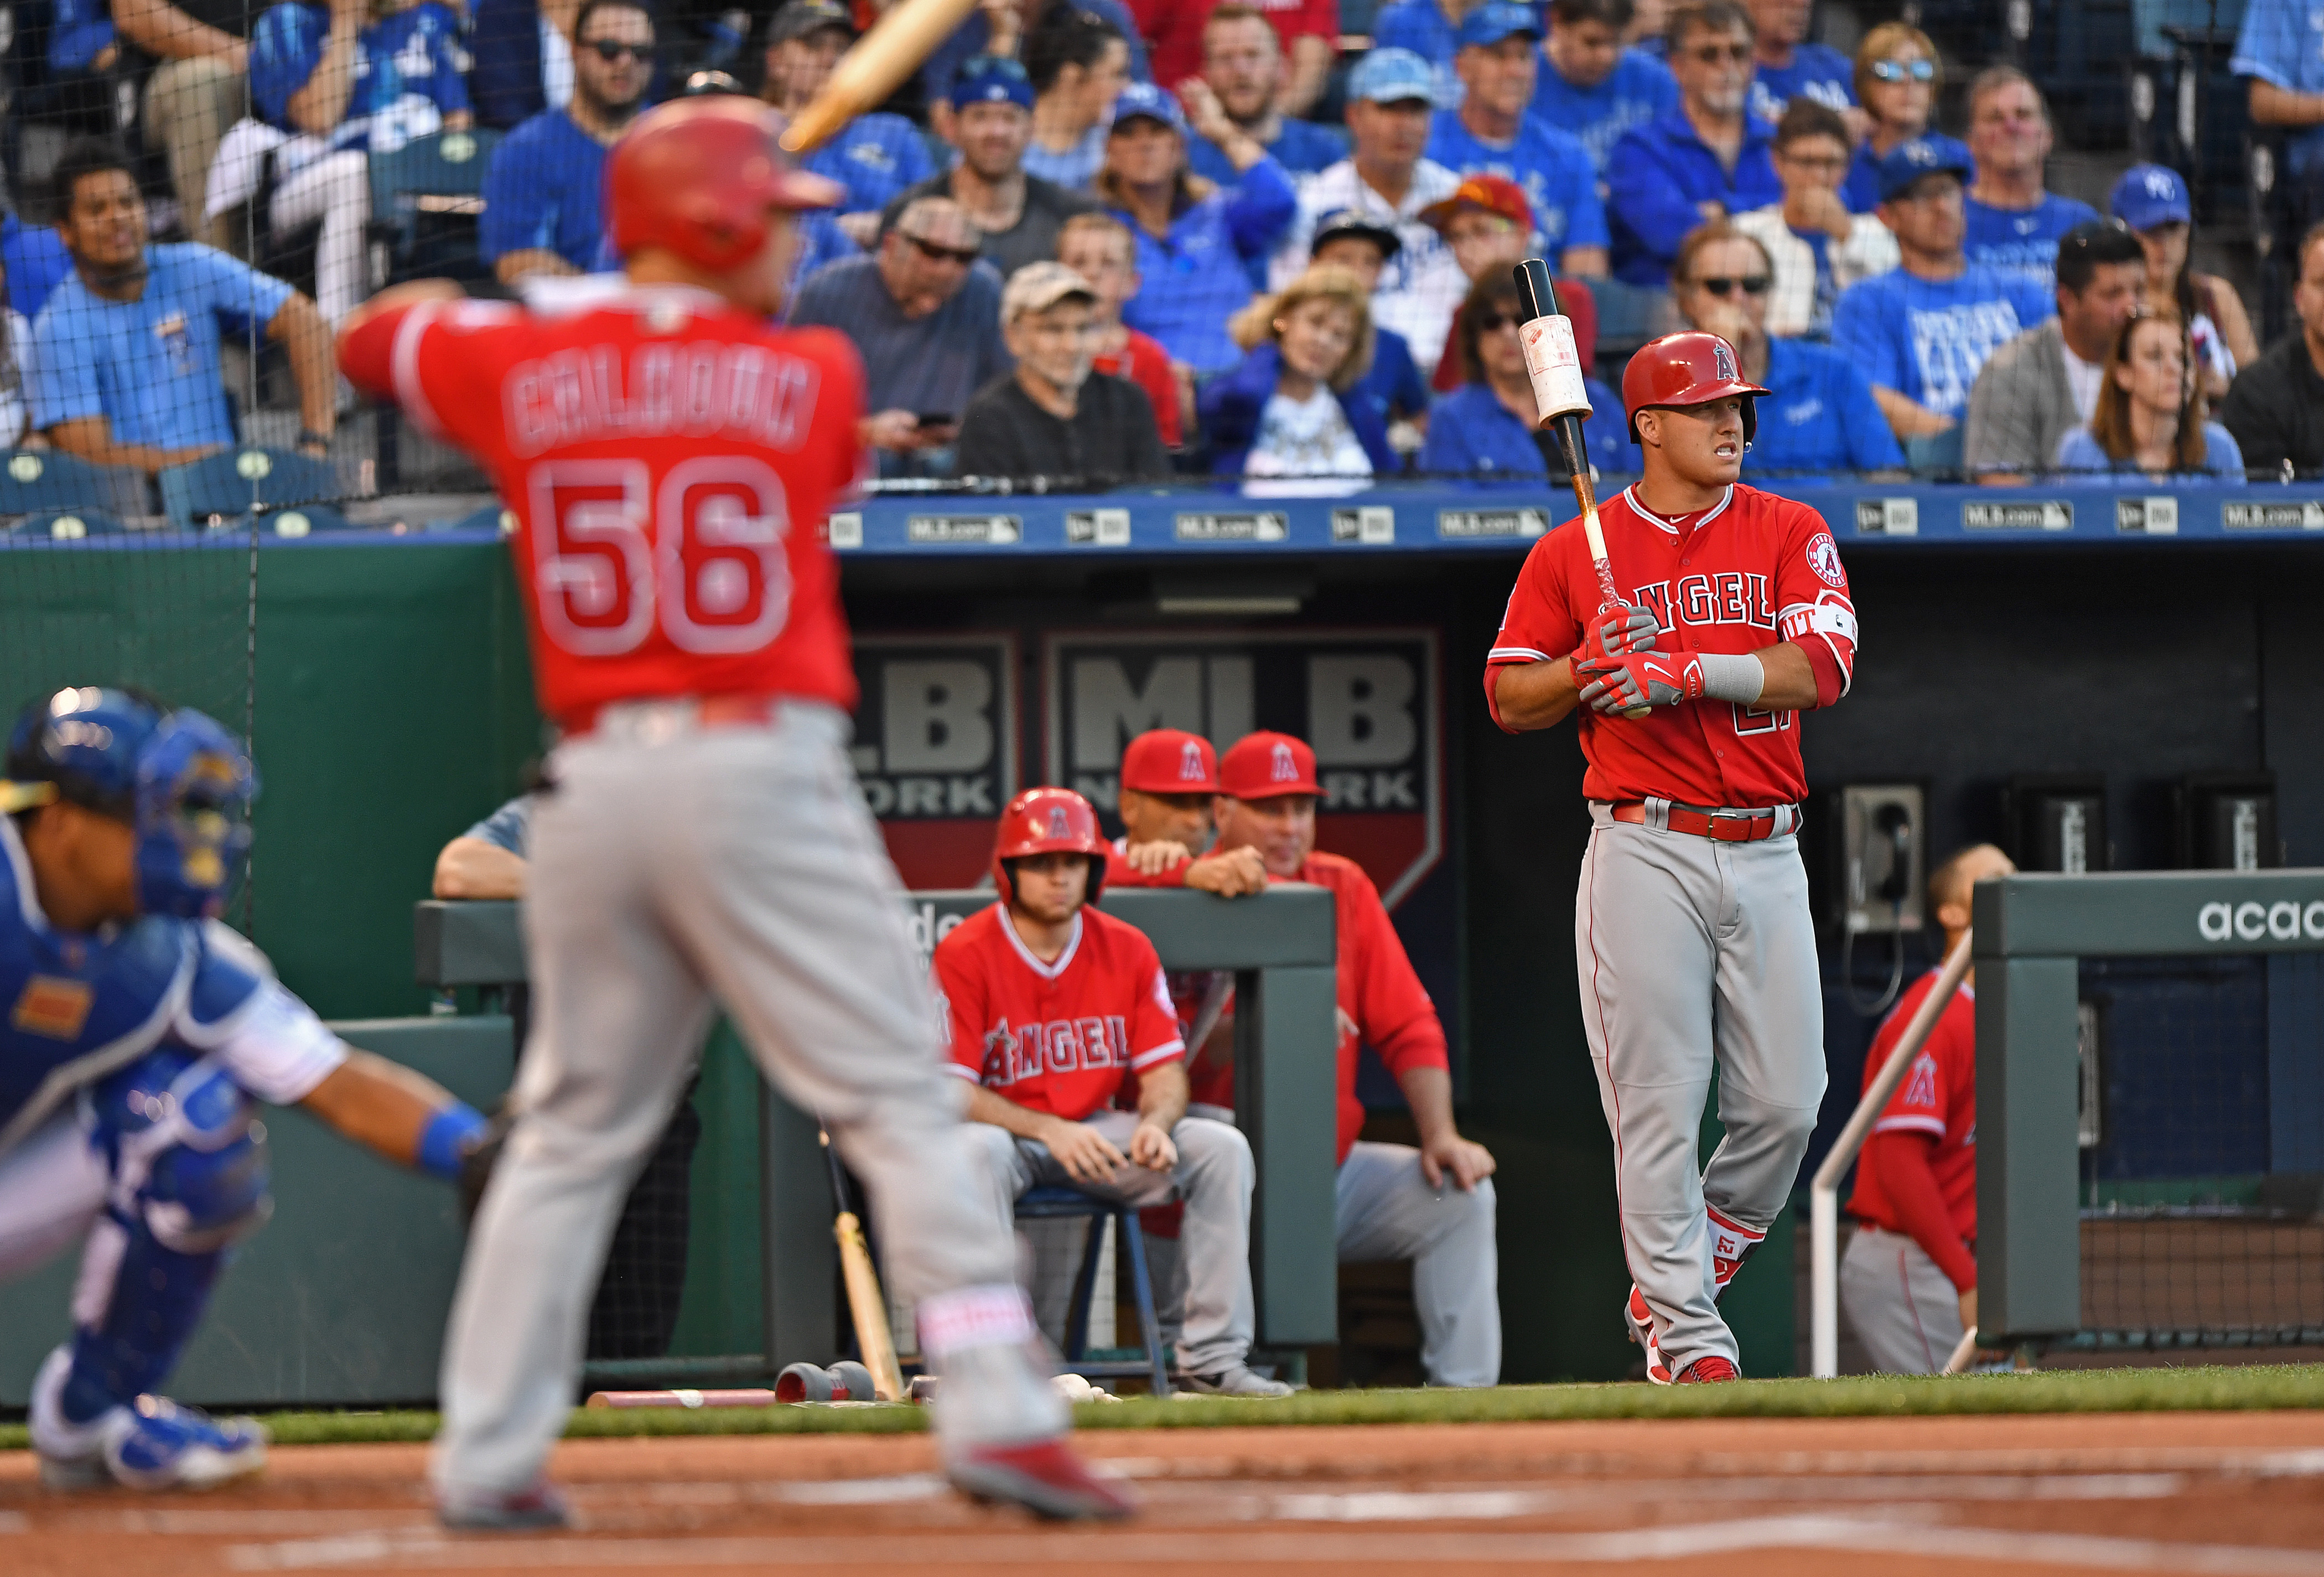 10011200-mlb-los-angeles-angels-at-kansas-city-royals